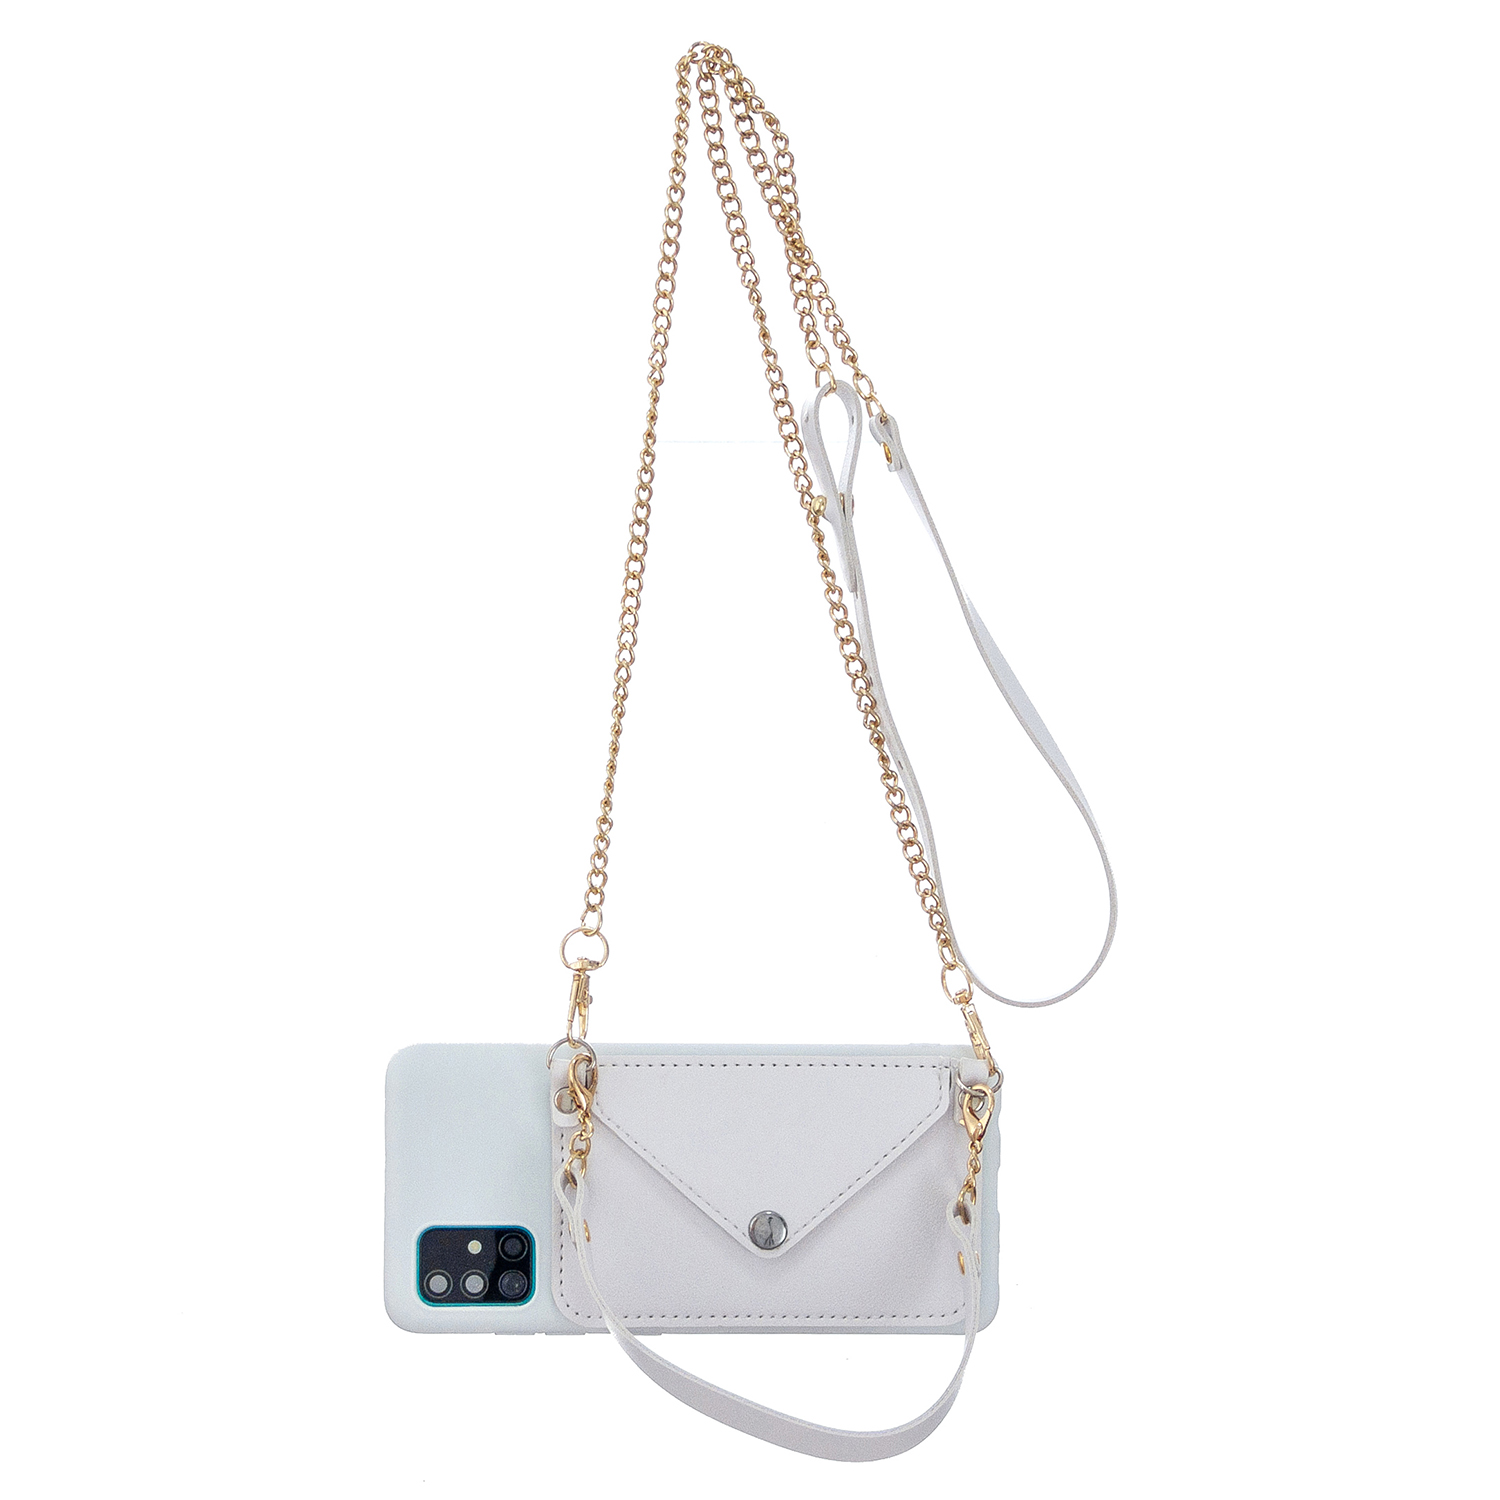 For HUAWEI P40/P40 Lite/P40 Pro Mobile Phone Cover with Pu Leather Card Holder + Hand Rope + Straddle Rope white